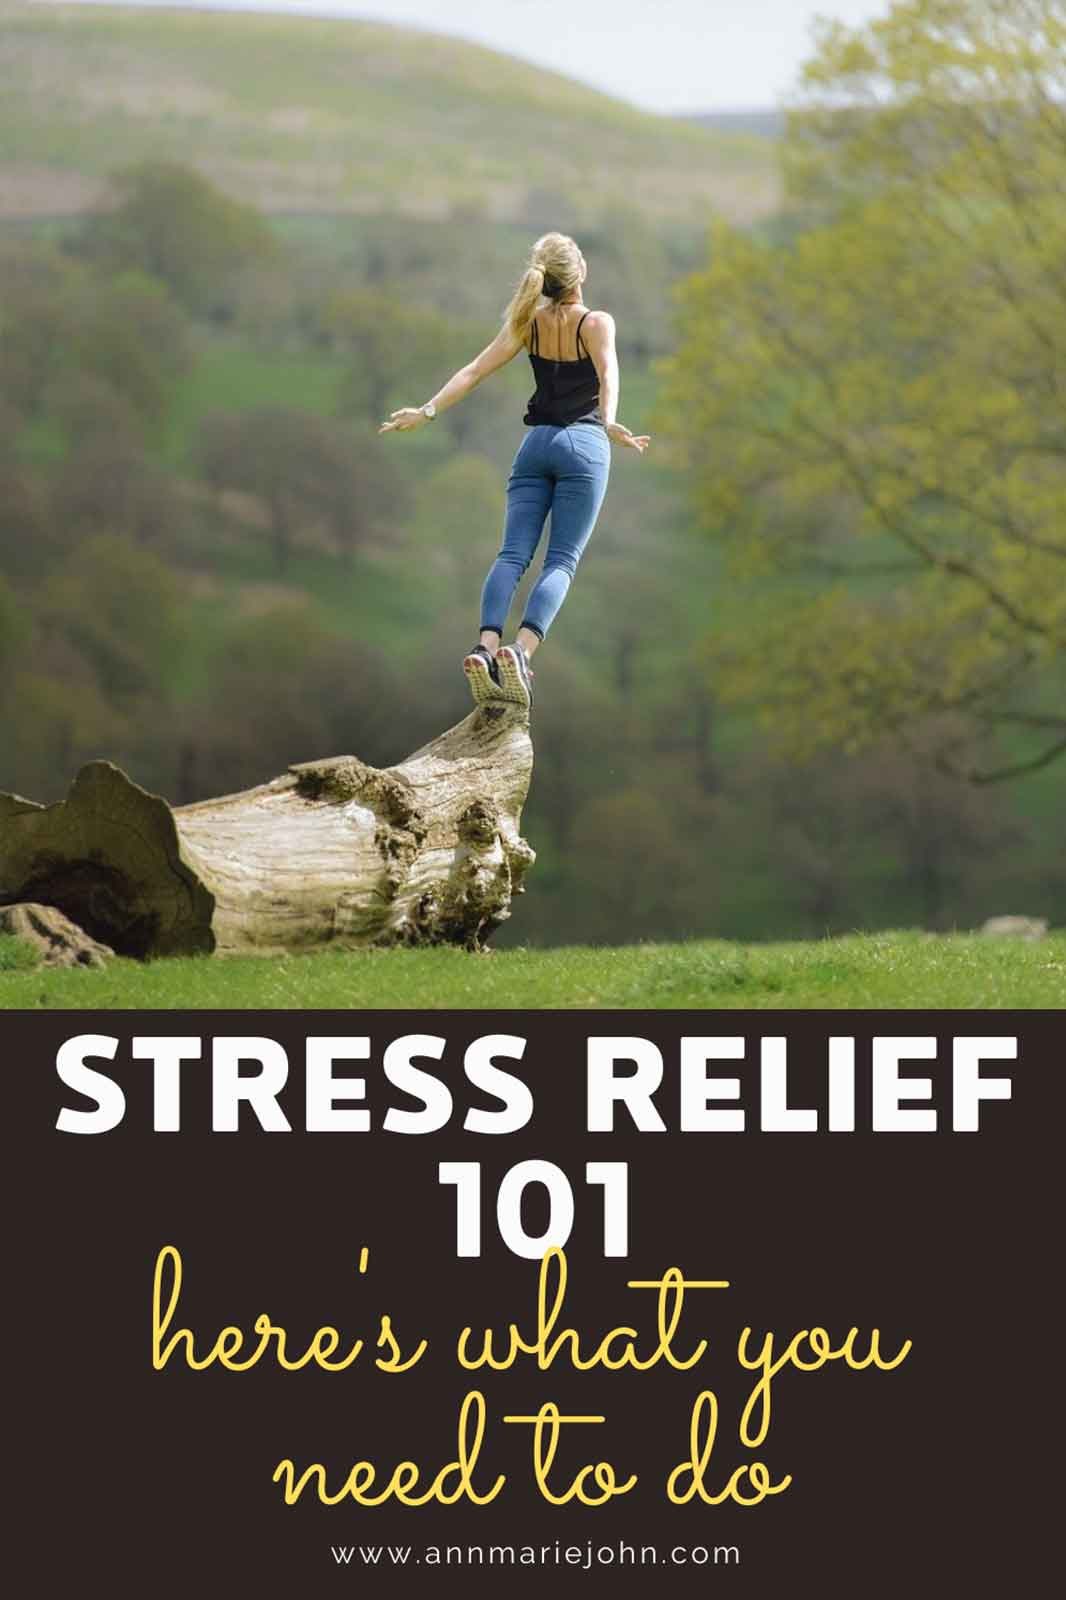 Stress Relief 101: Here's What You Need to Do